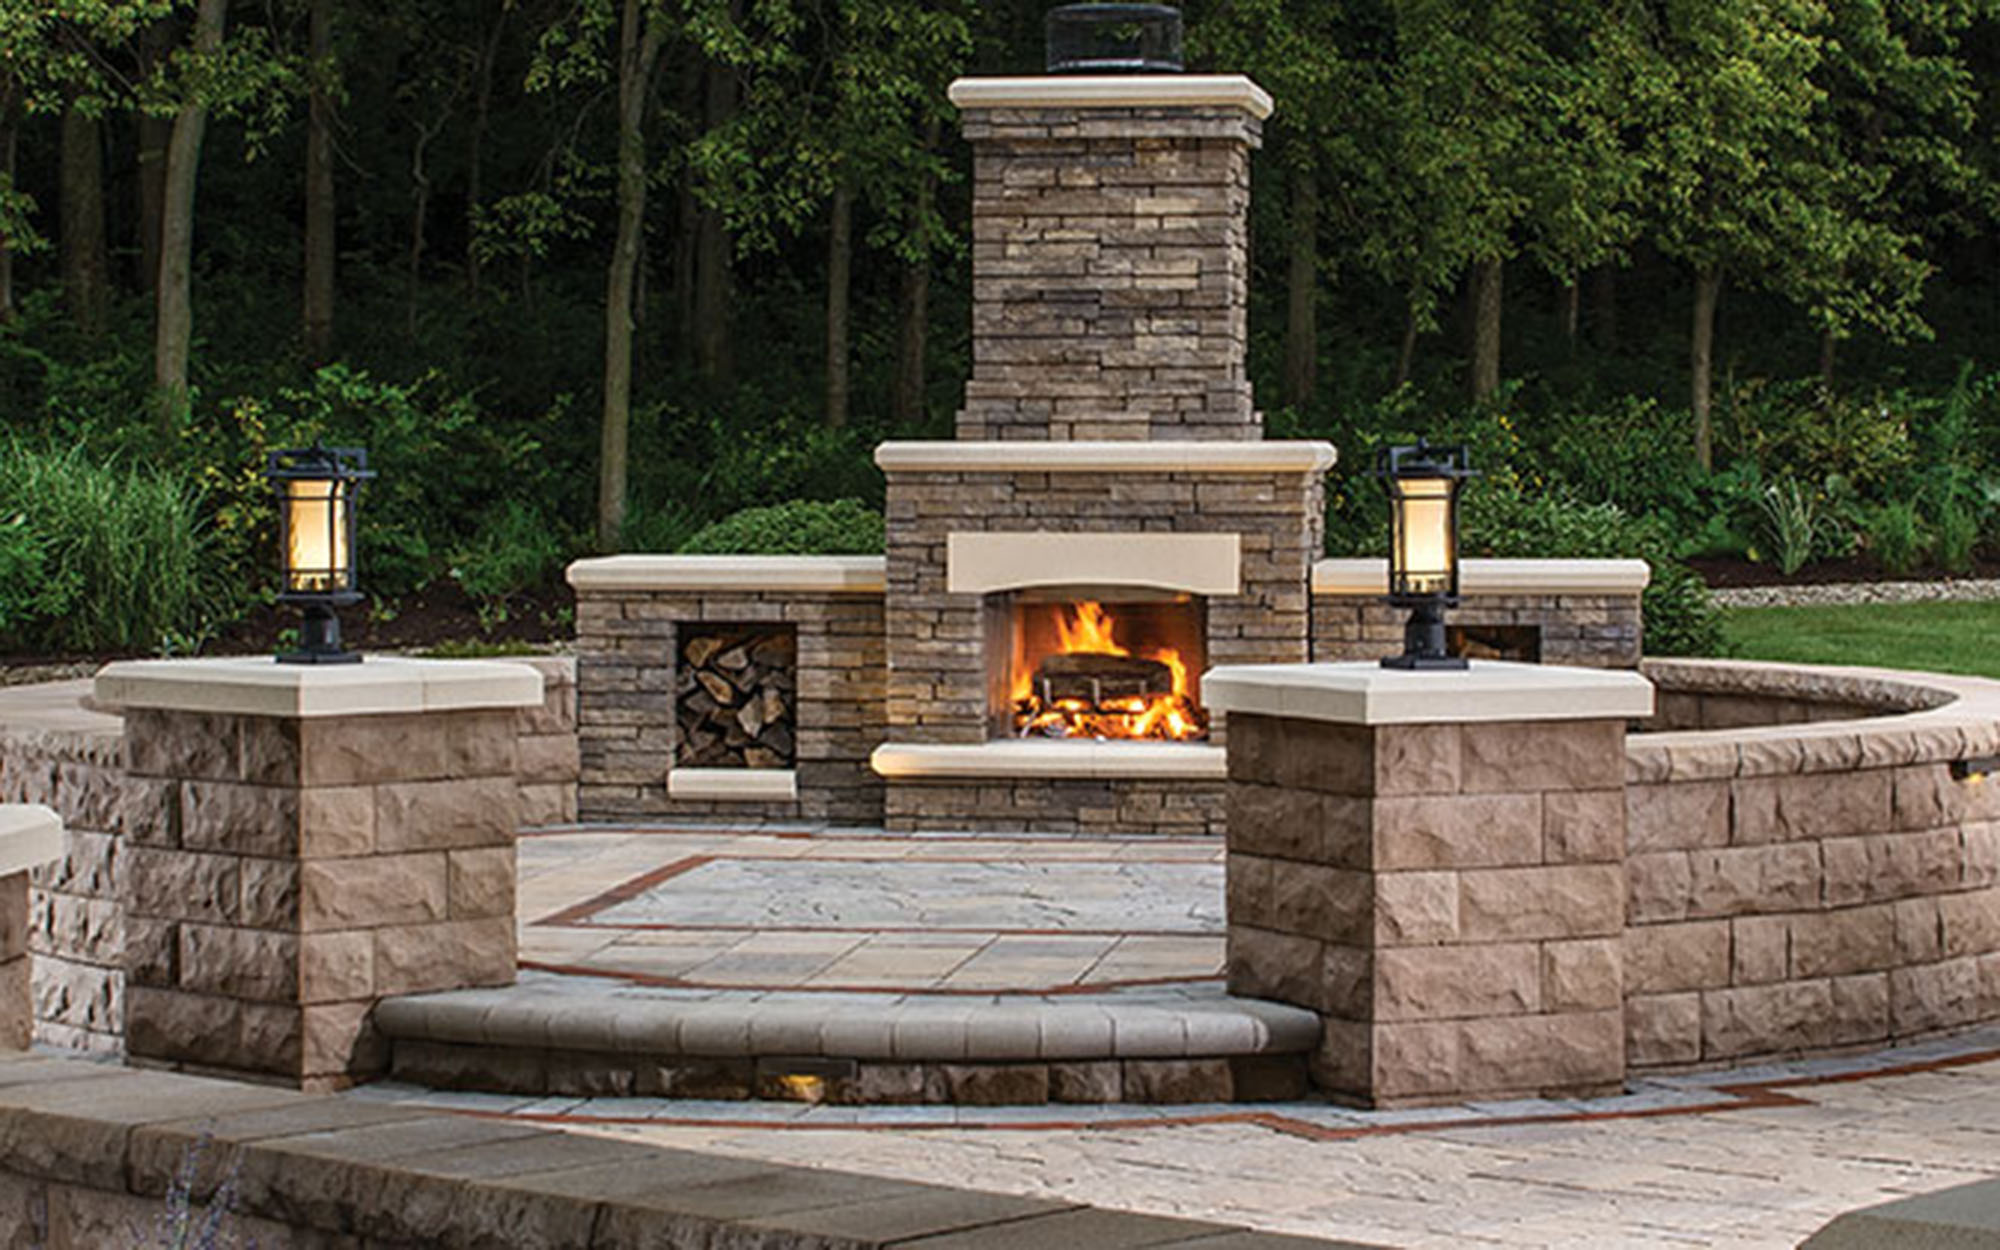 Belgard Outdoor Living - Belgard offers a wide selection of wonderful pieces, including their patented Belgard Elements fireplace kits and outdoor kitchen ovens.